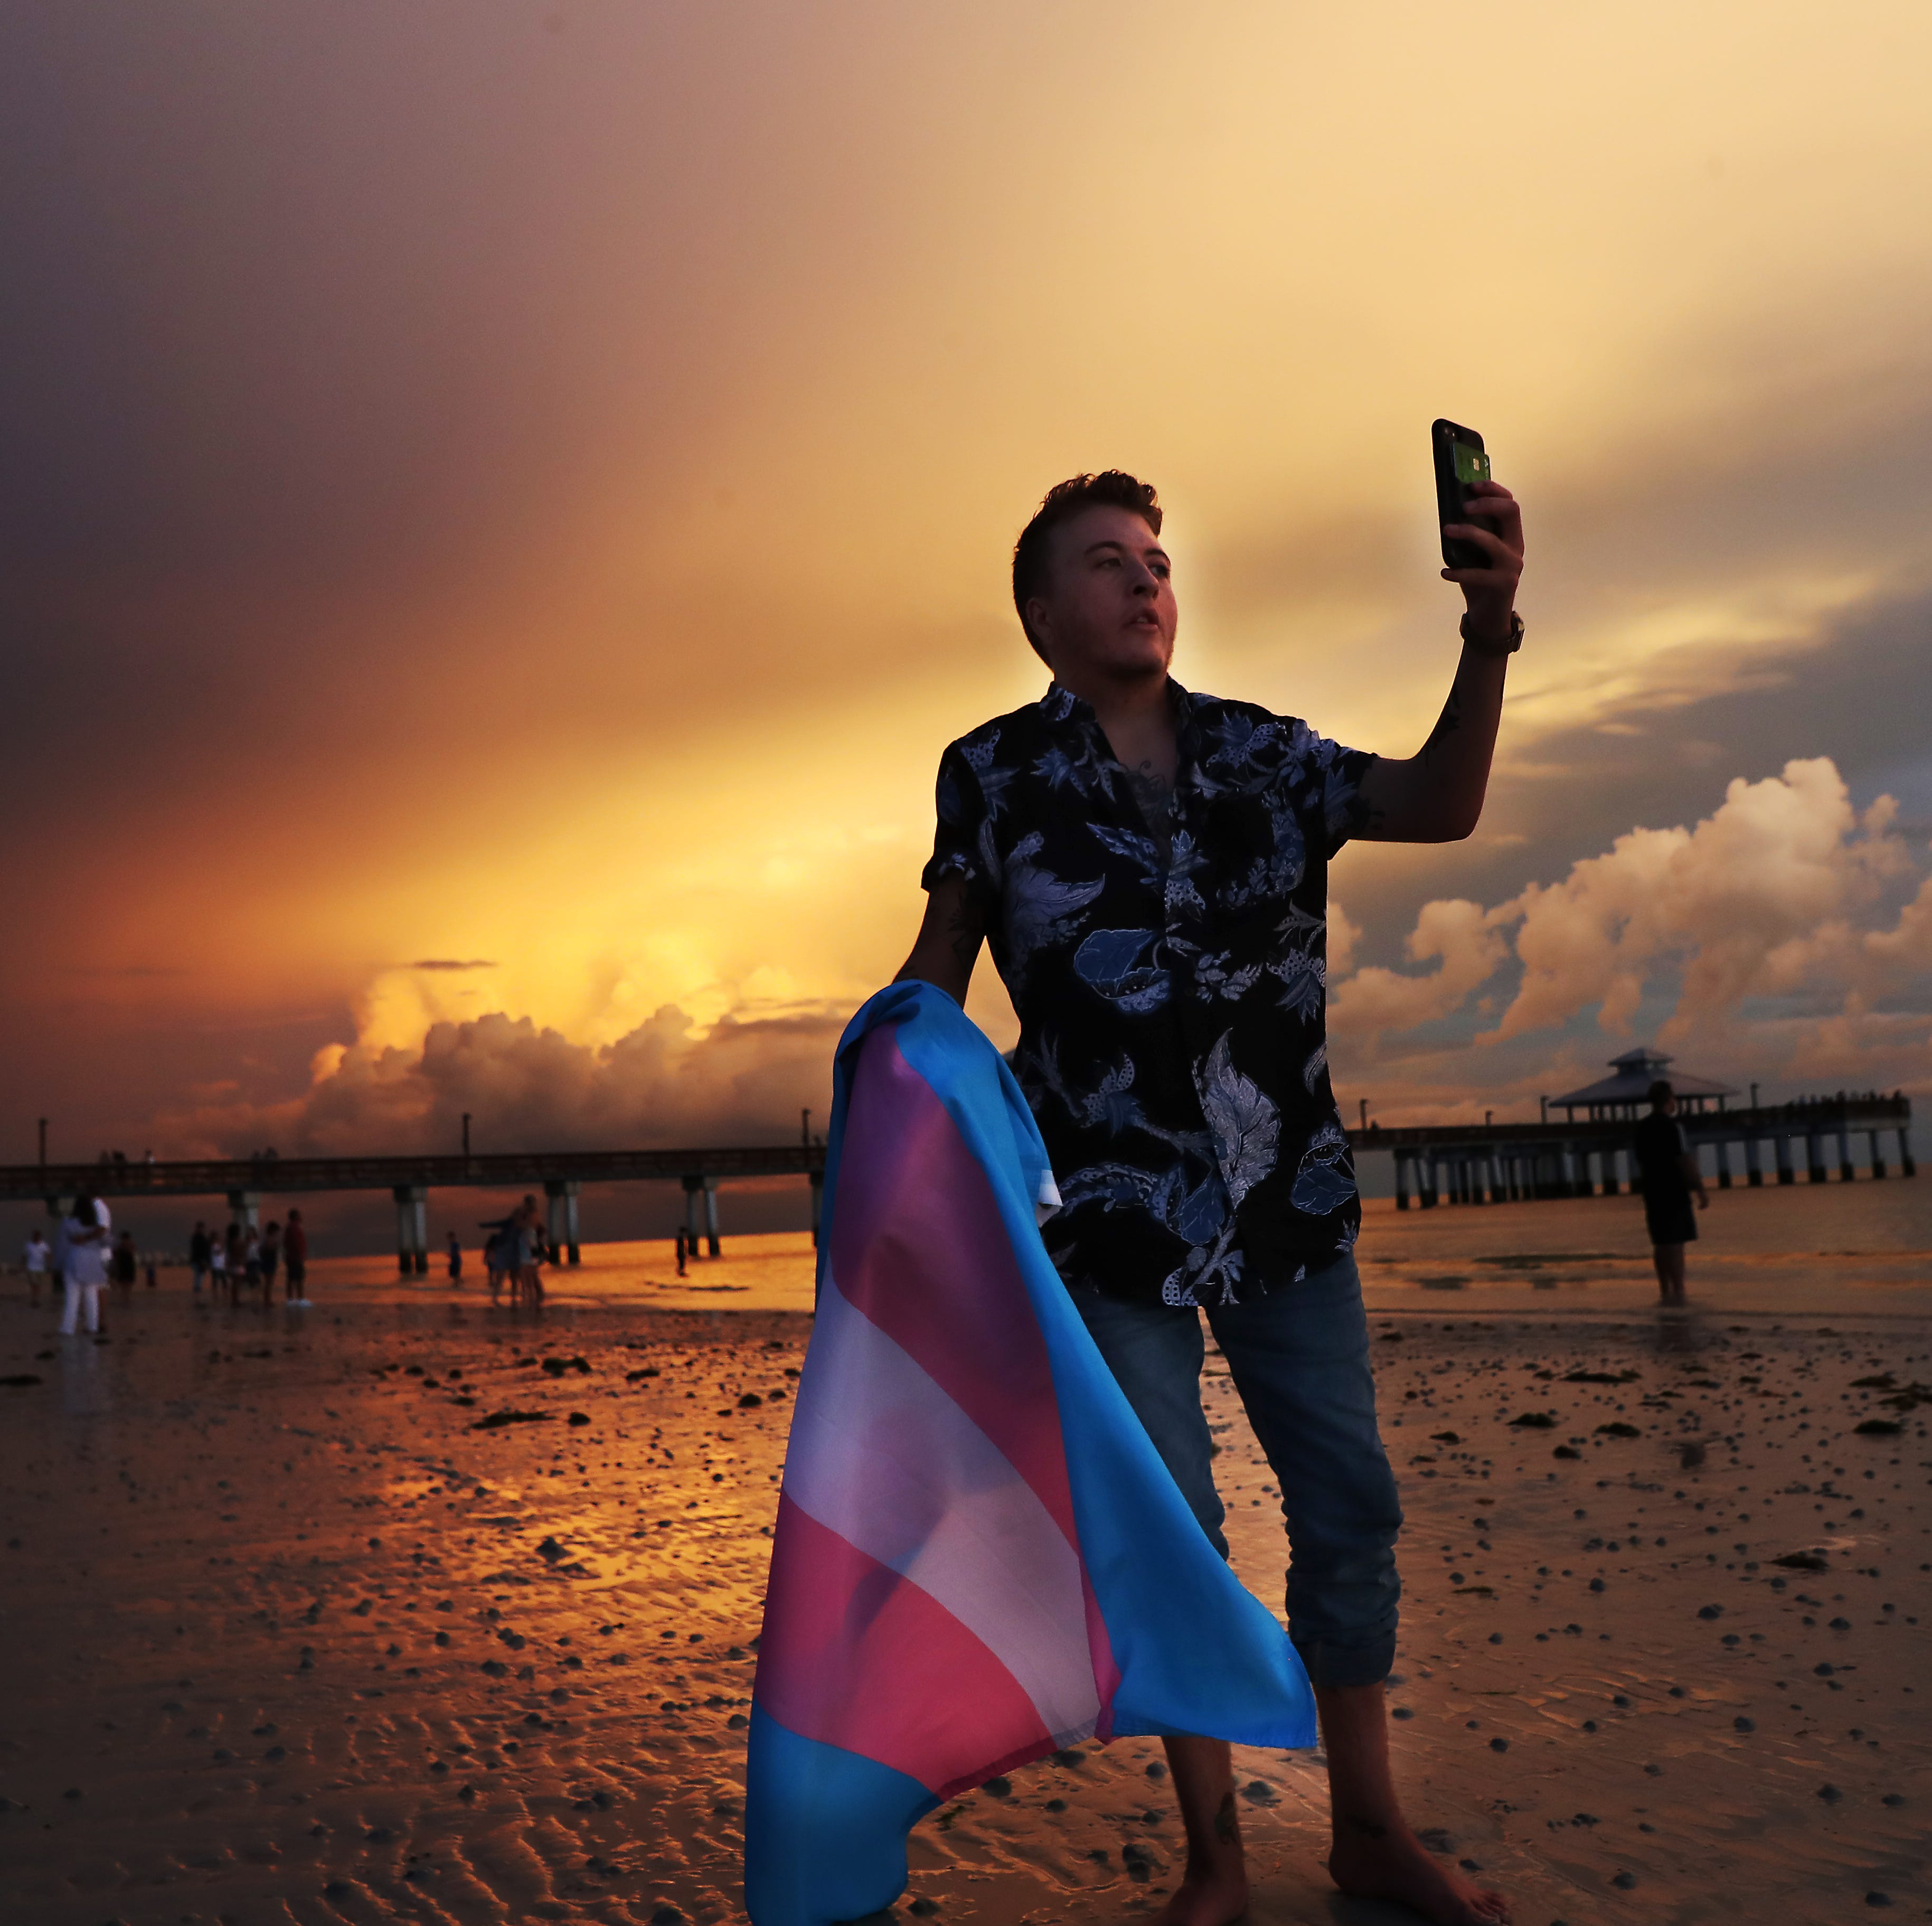 Being transgender in Southwest Florida still has risks